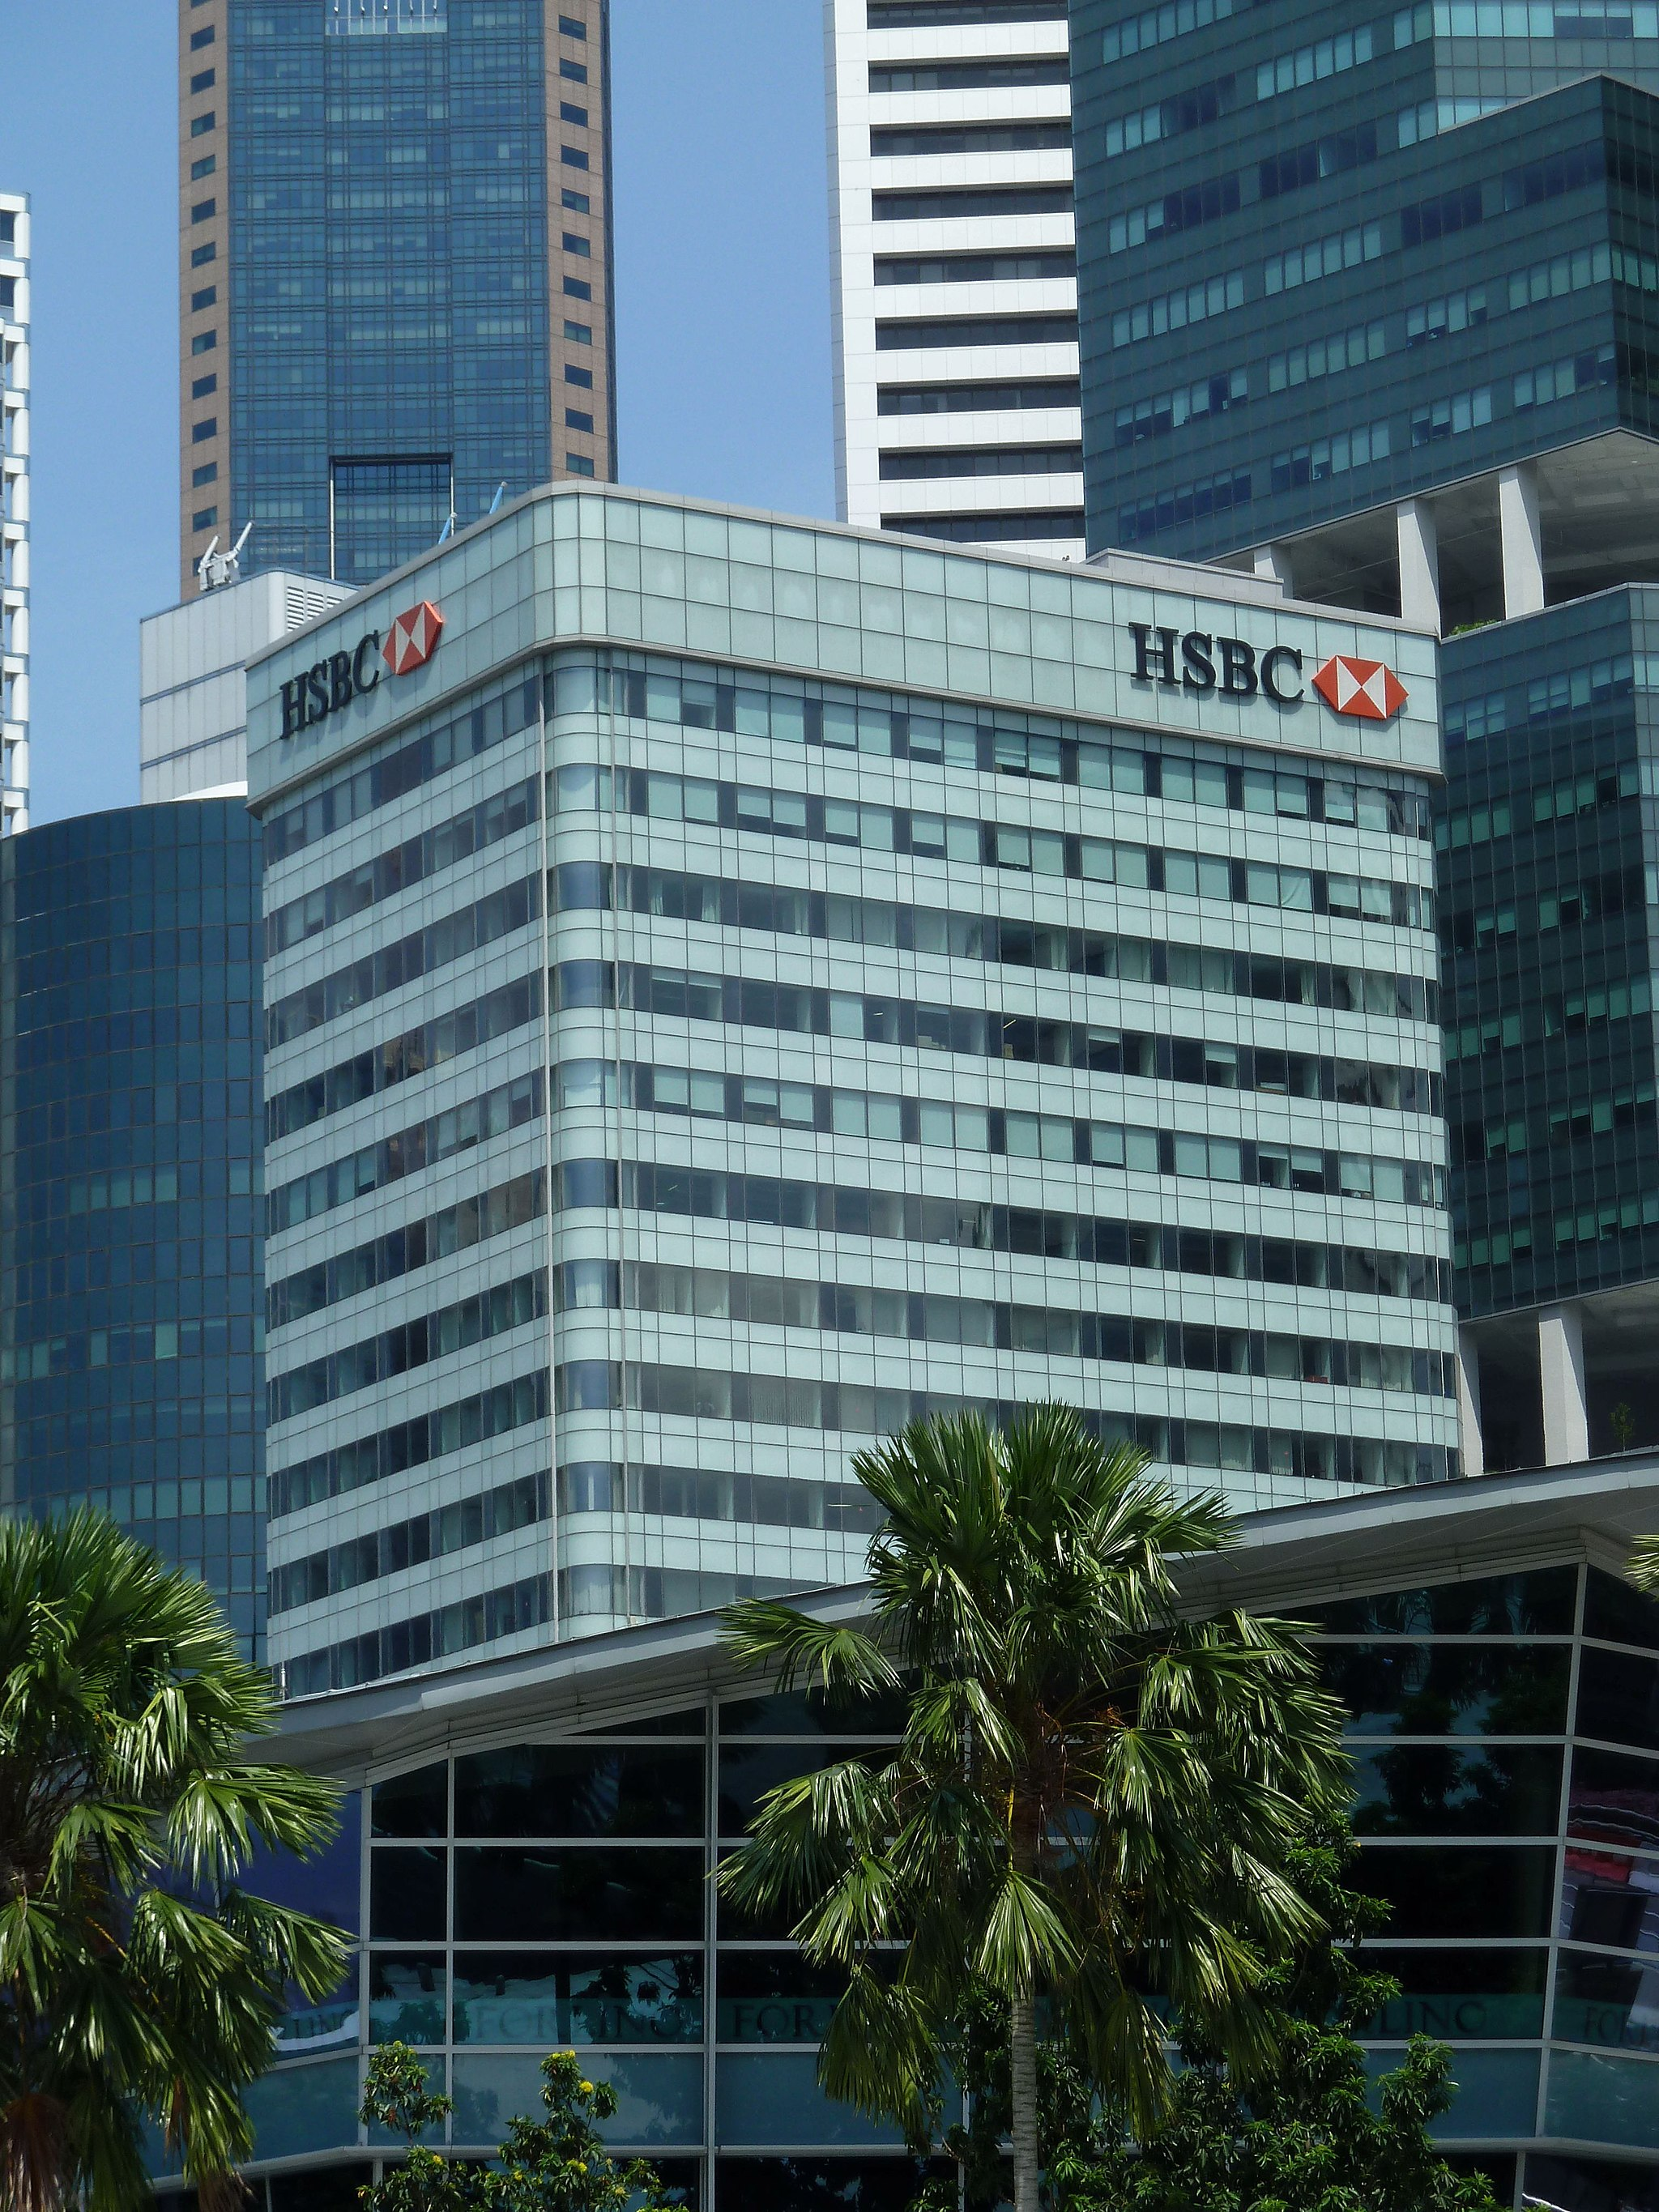 HSBC has said that Singapore remains key to its growth. Photo courtesy: Wikimedia